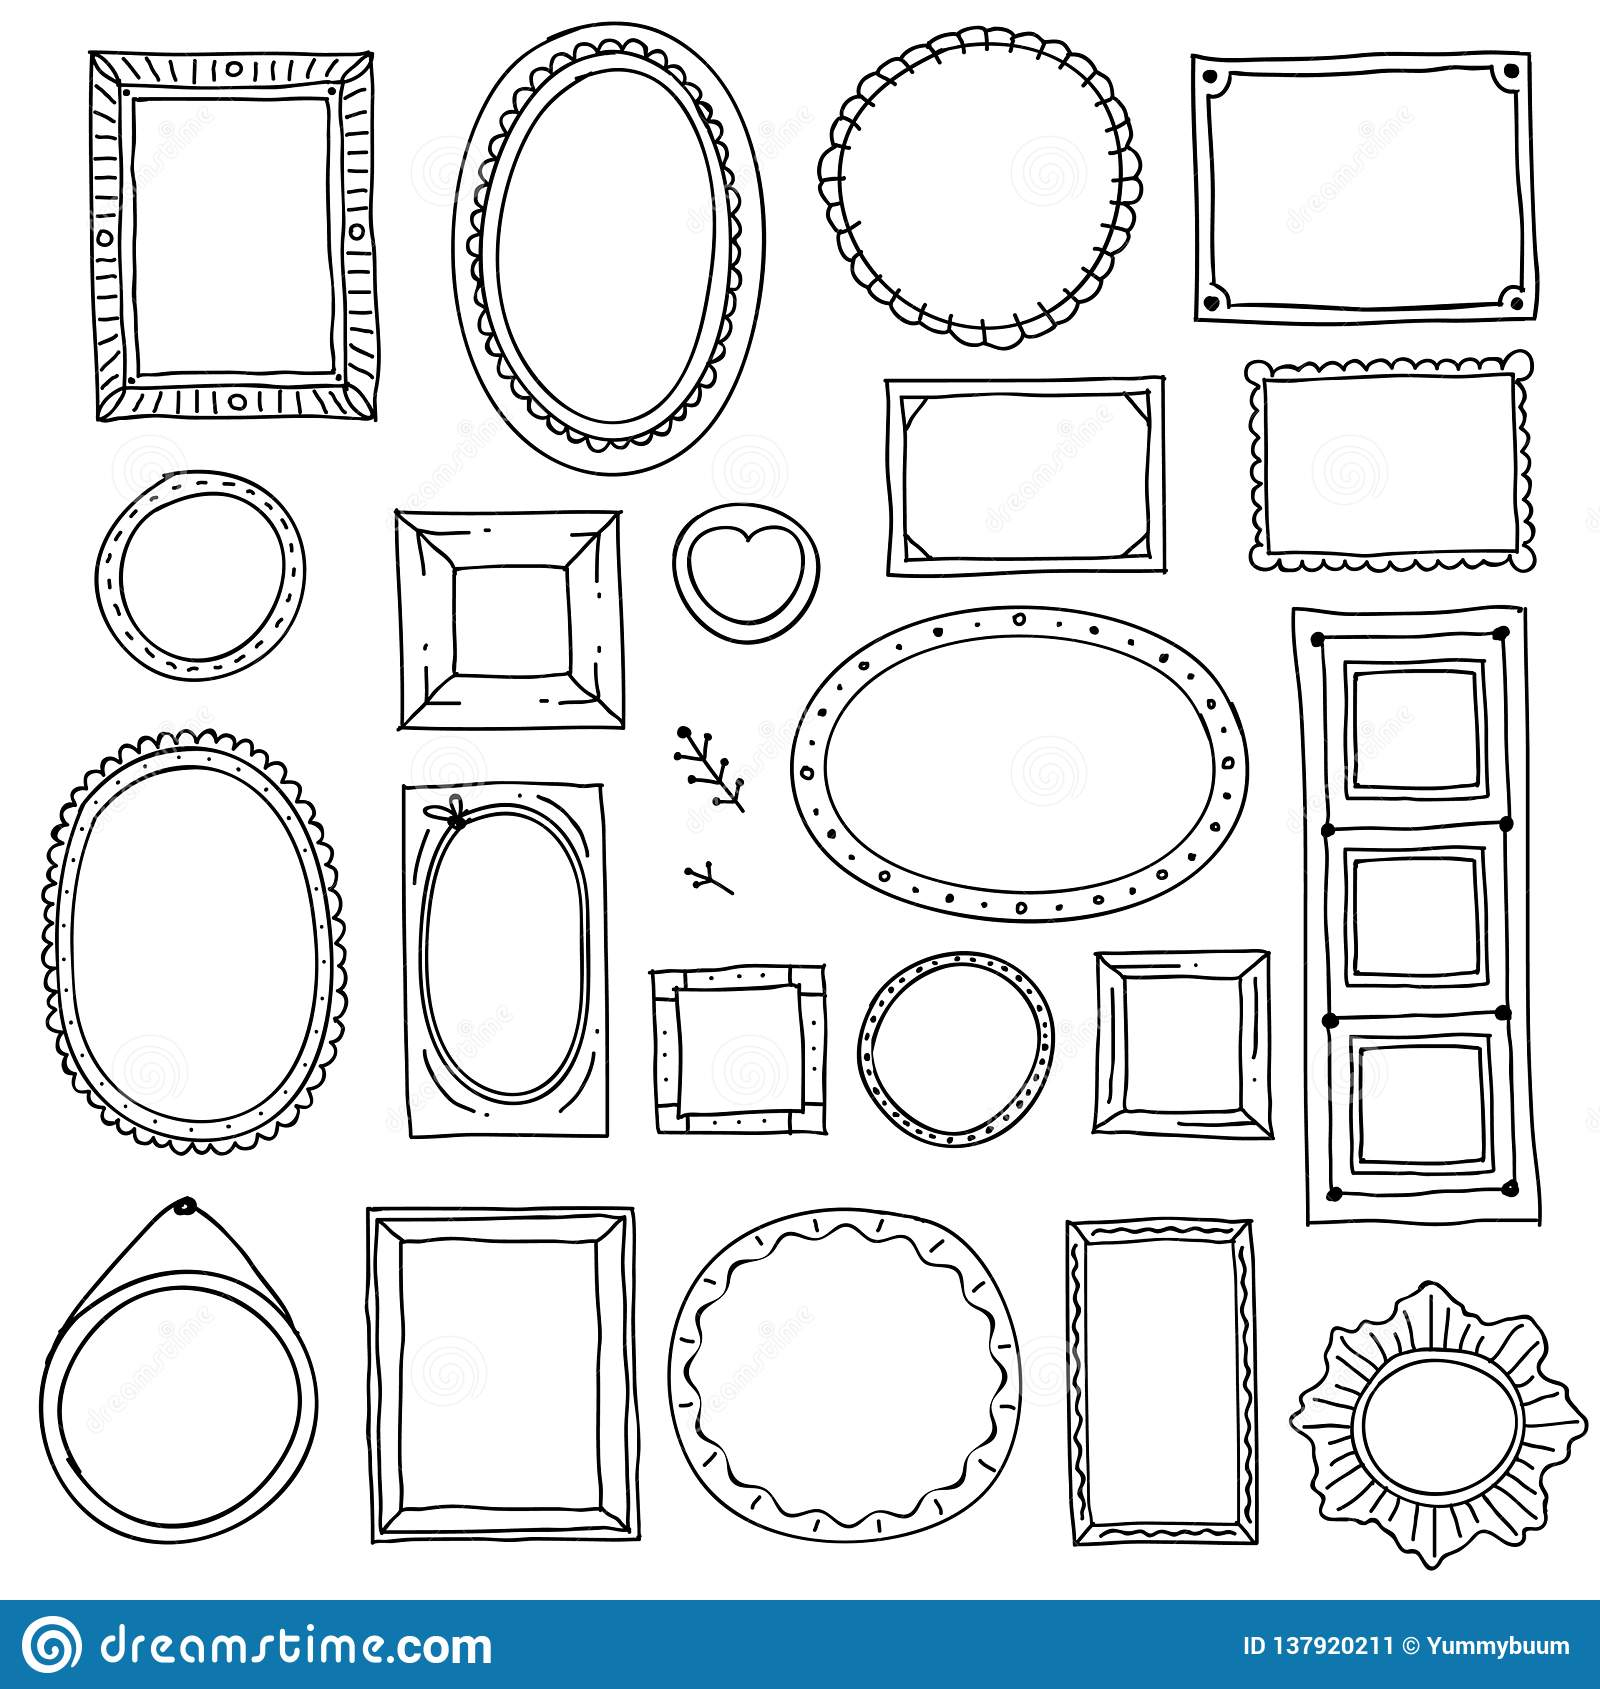 Hand drawn picture frame. Doodle square oval photo frames, scrapbook scribble borders vector sketch isolated set